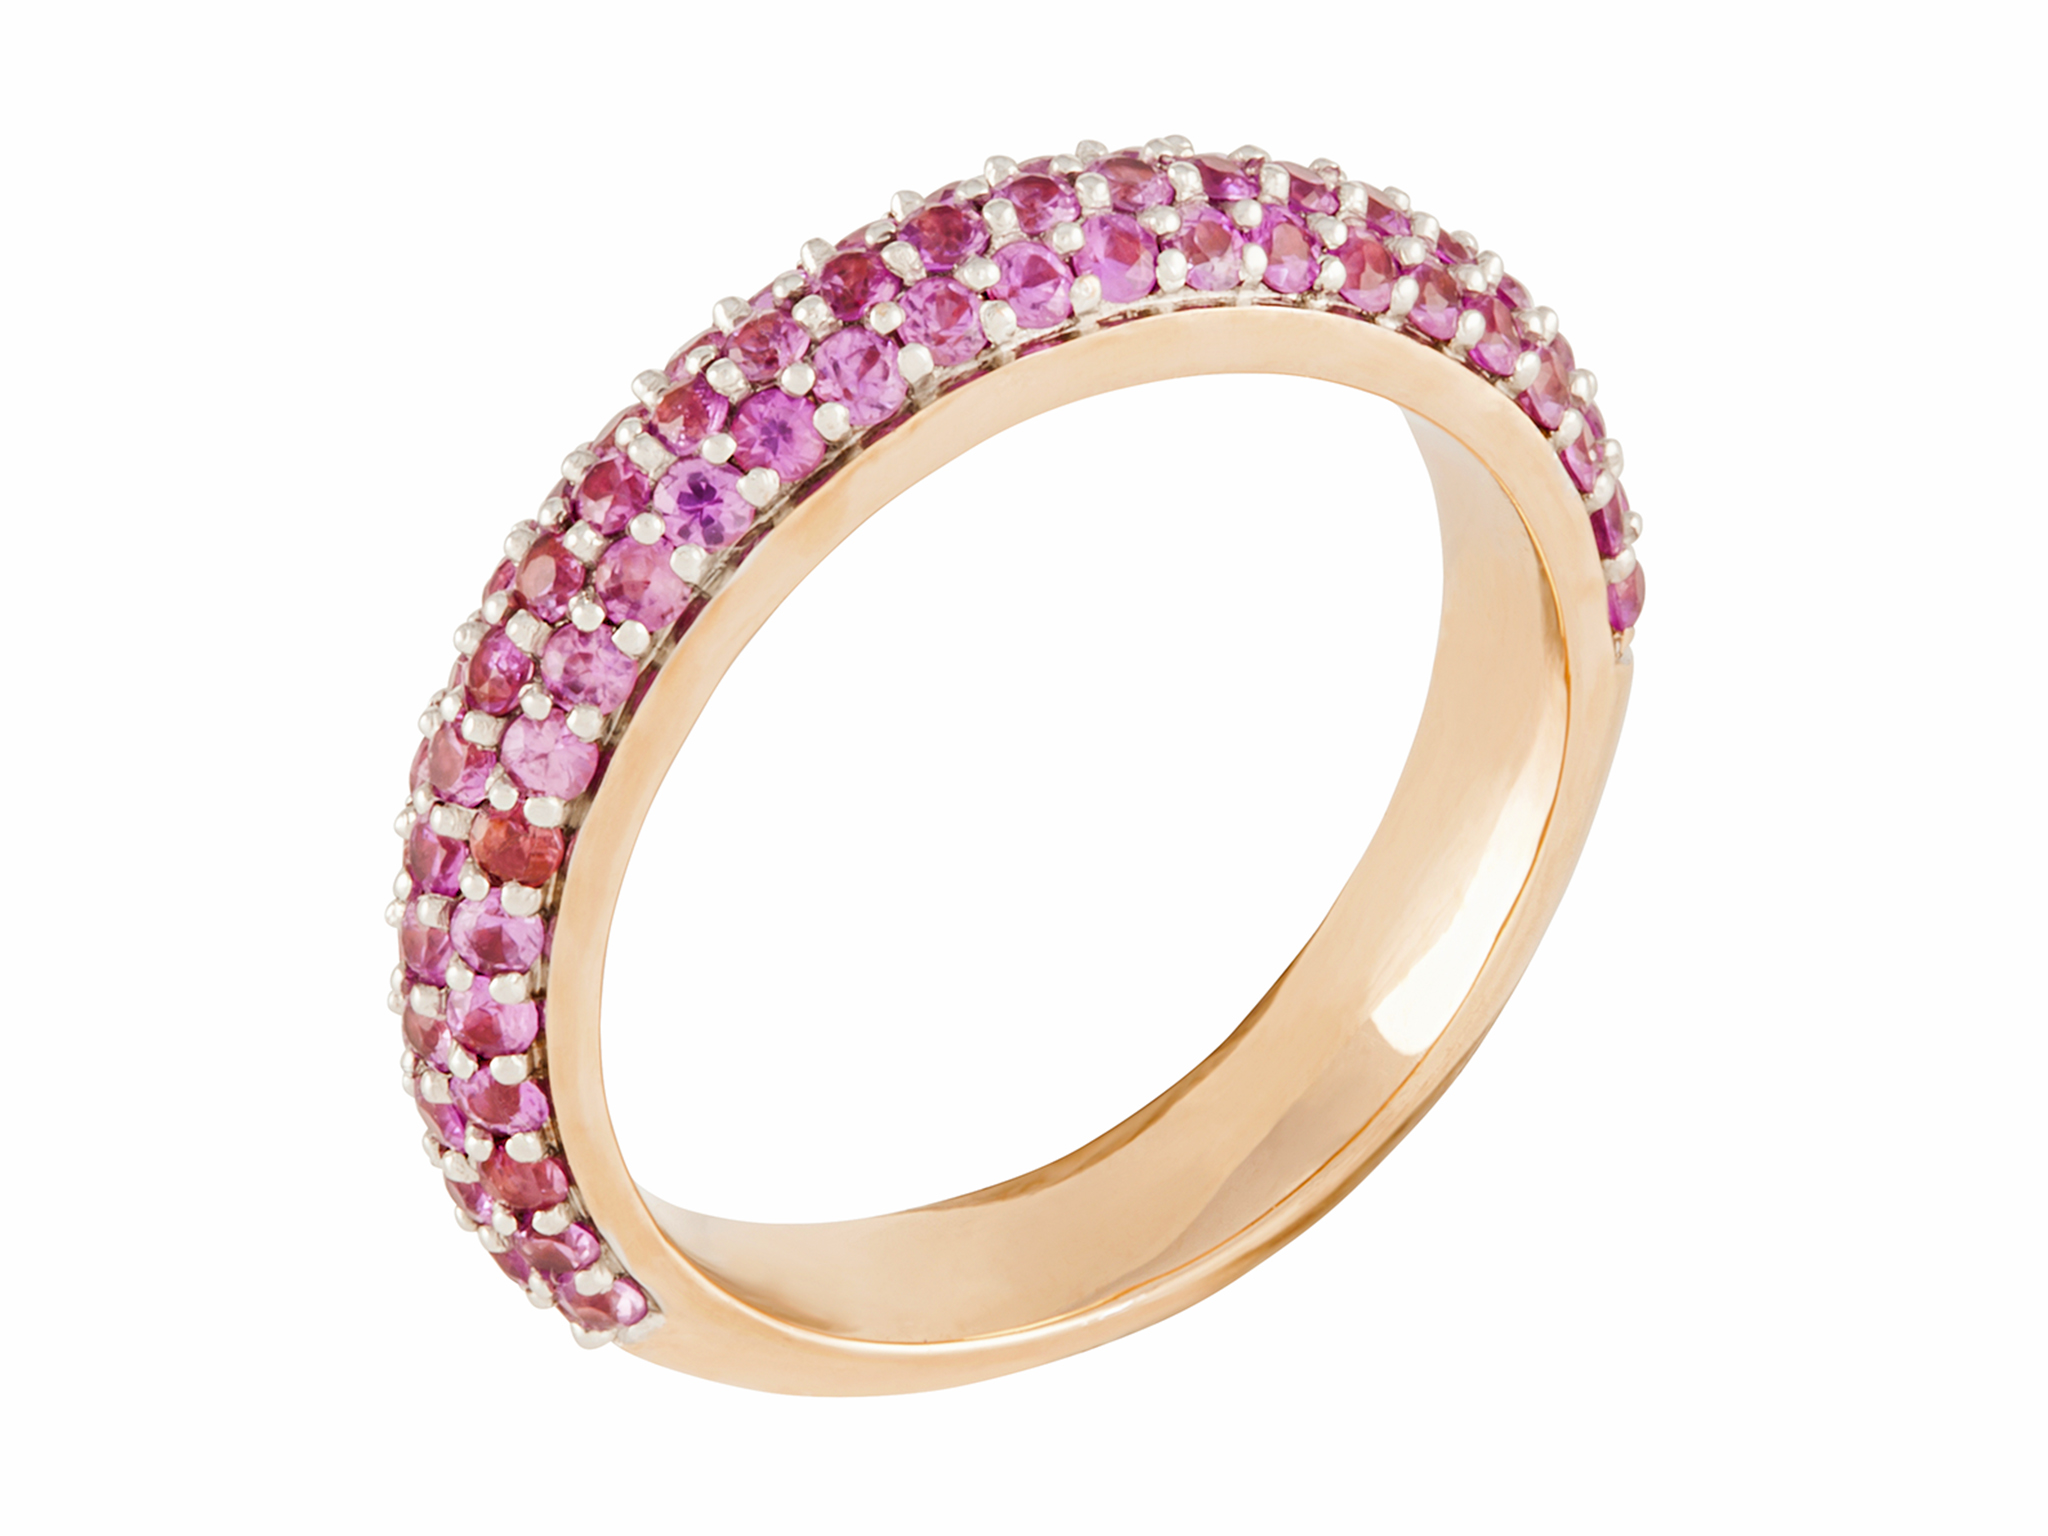 lugaro band rings pink in of wedding bands diamond current and gold rose ideas